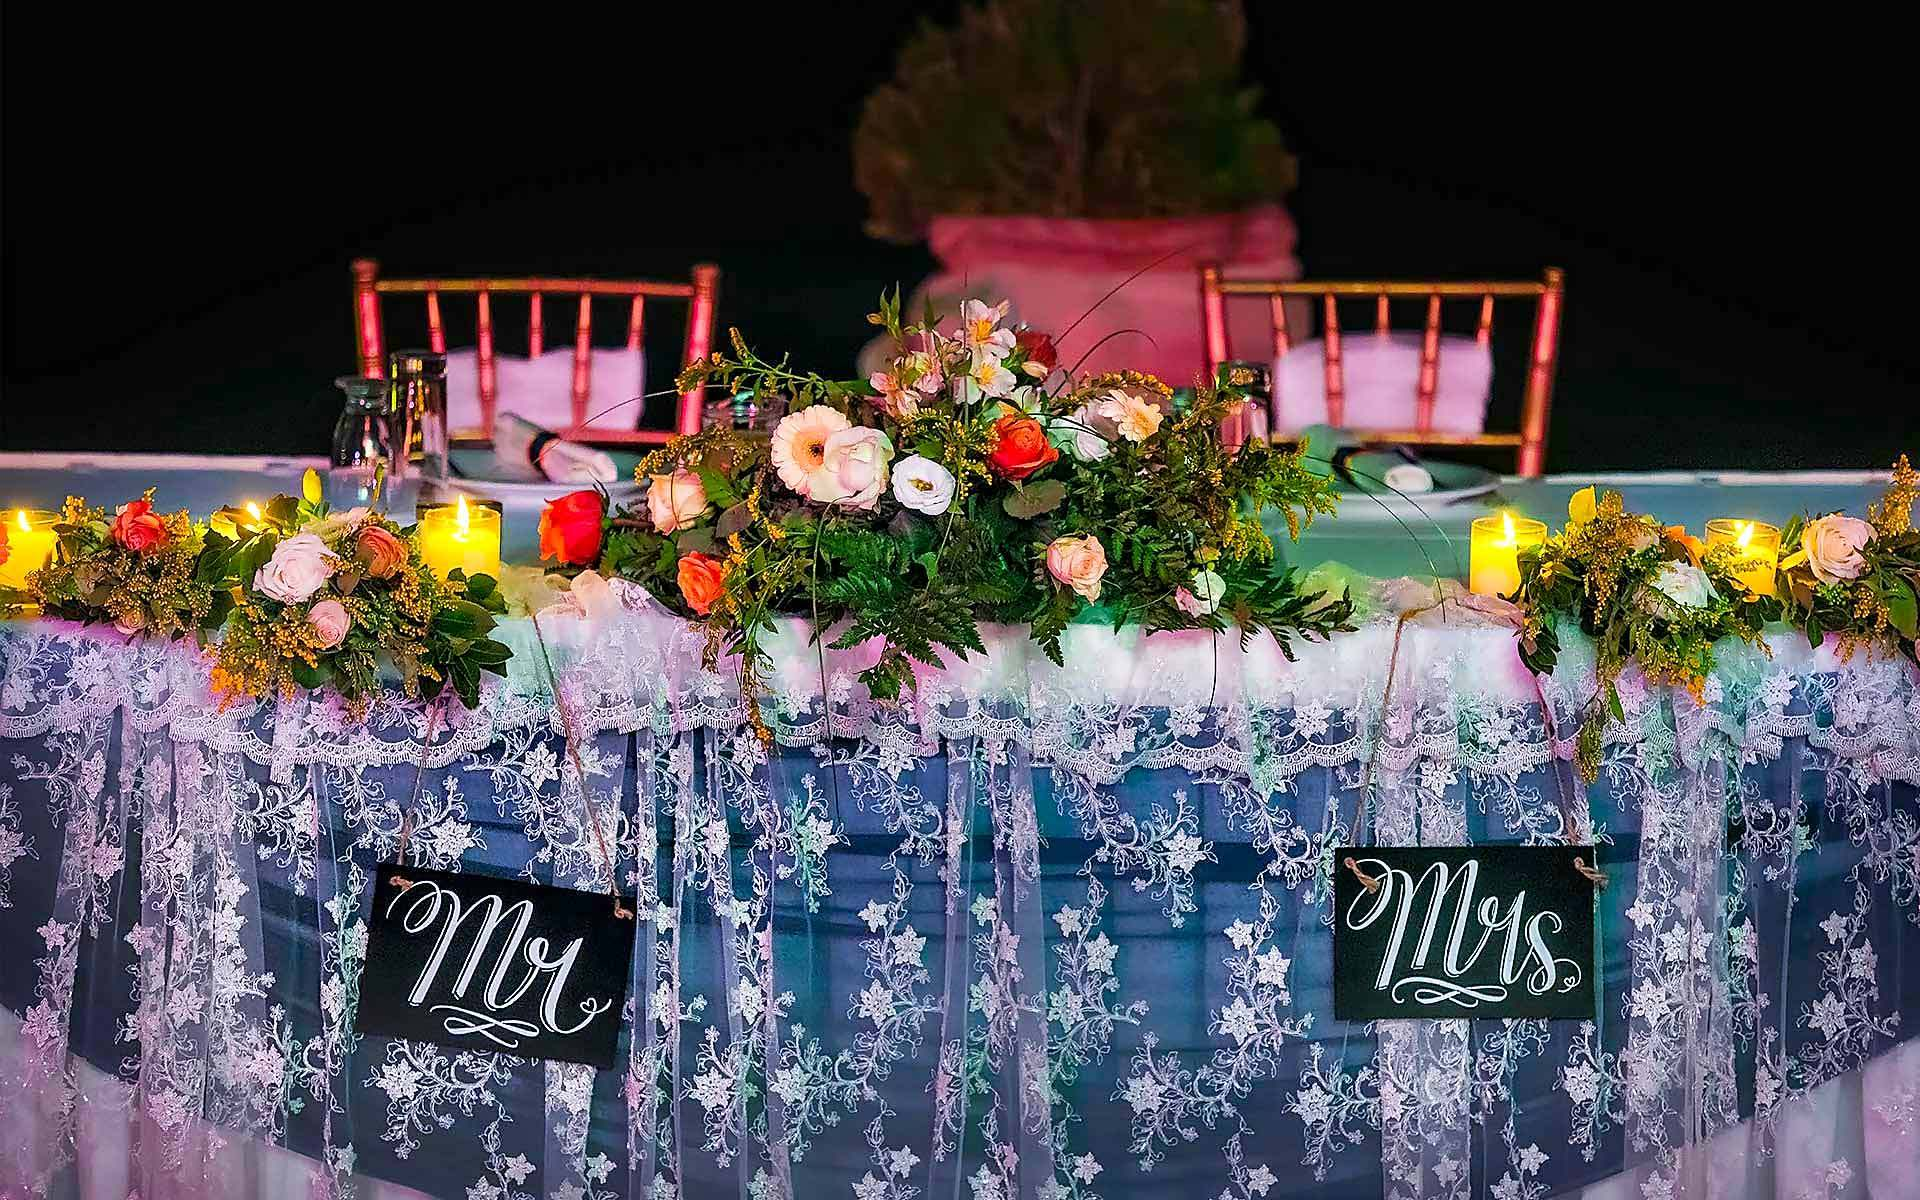 Beautiful-Bridal-Table-With-Lace-And-Flowers-For-A-Wedding-In-Porto-Heli